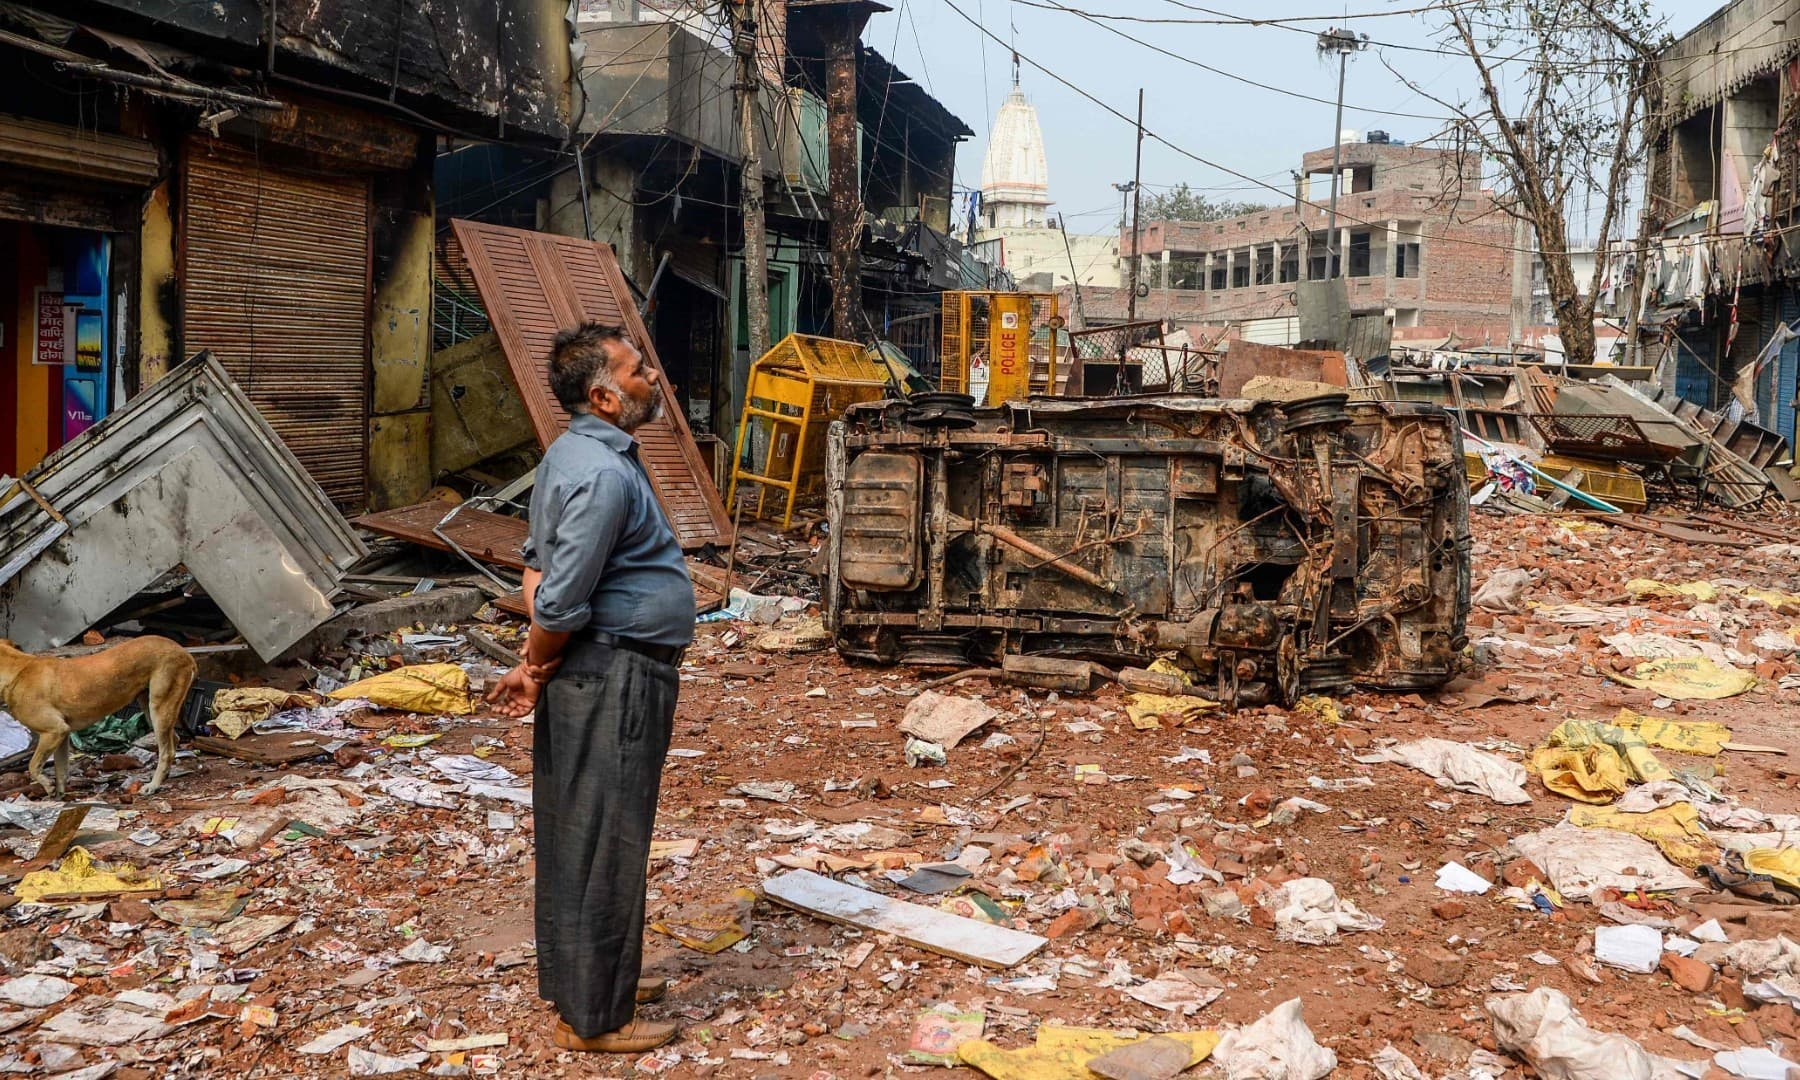 In this file photo taken on February 26, a resident stands among debris in a neighbourhood following clashes between people supporting and opposing a contentious amendment to India's citizenship law in Delhi. — AFP